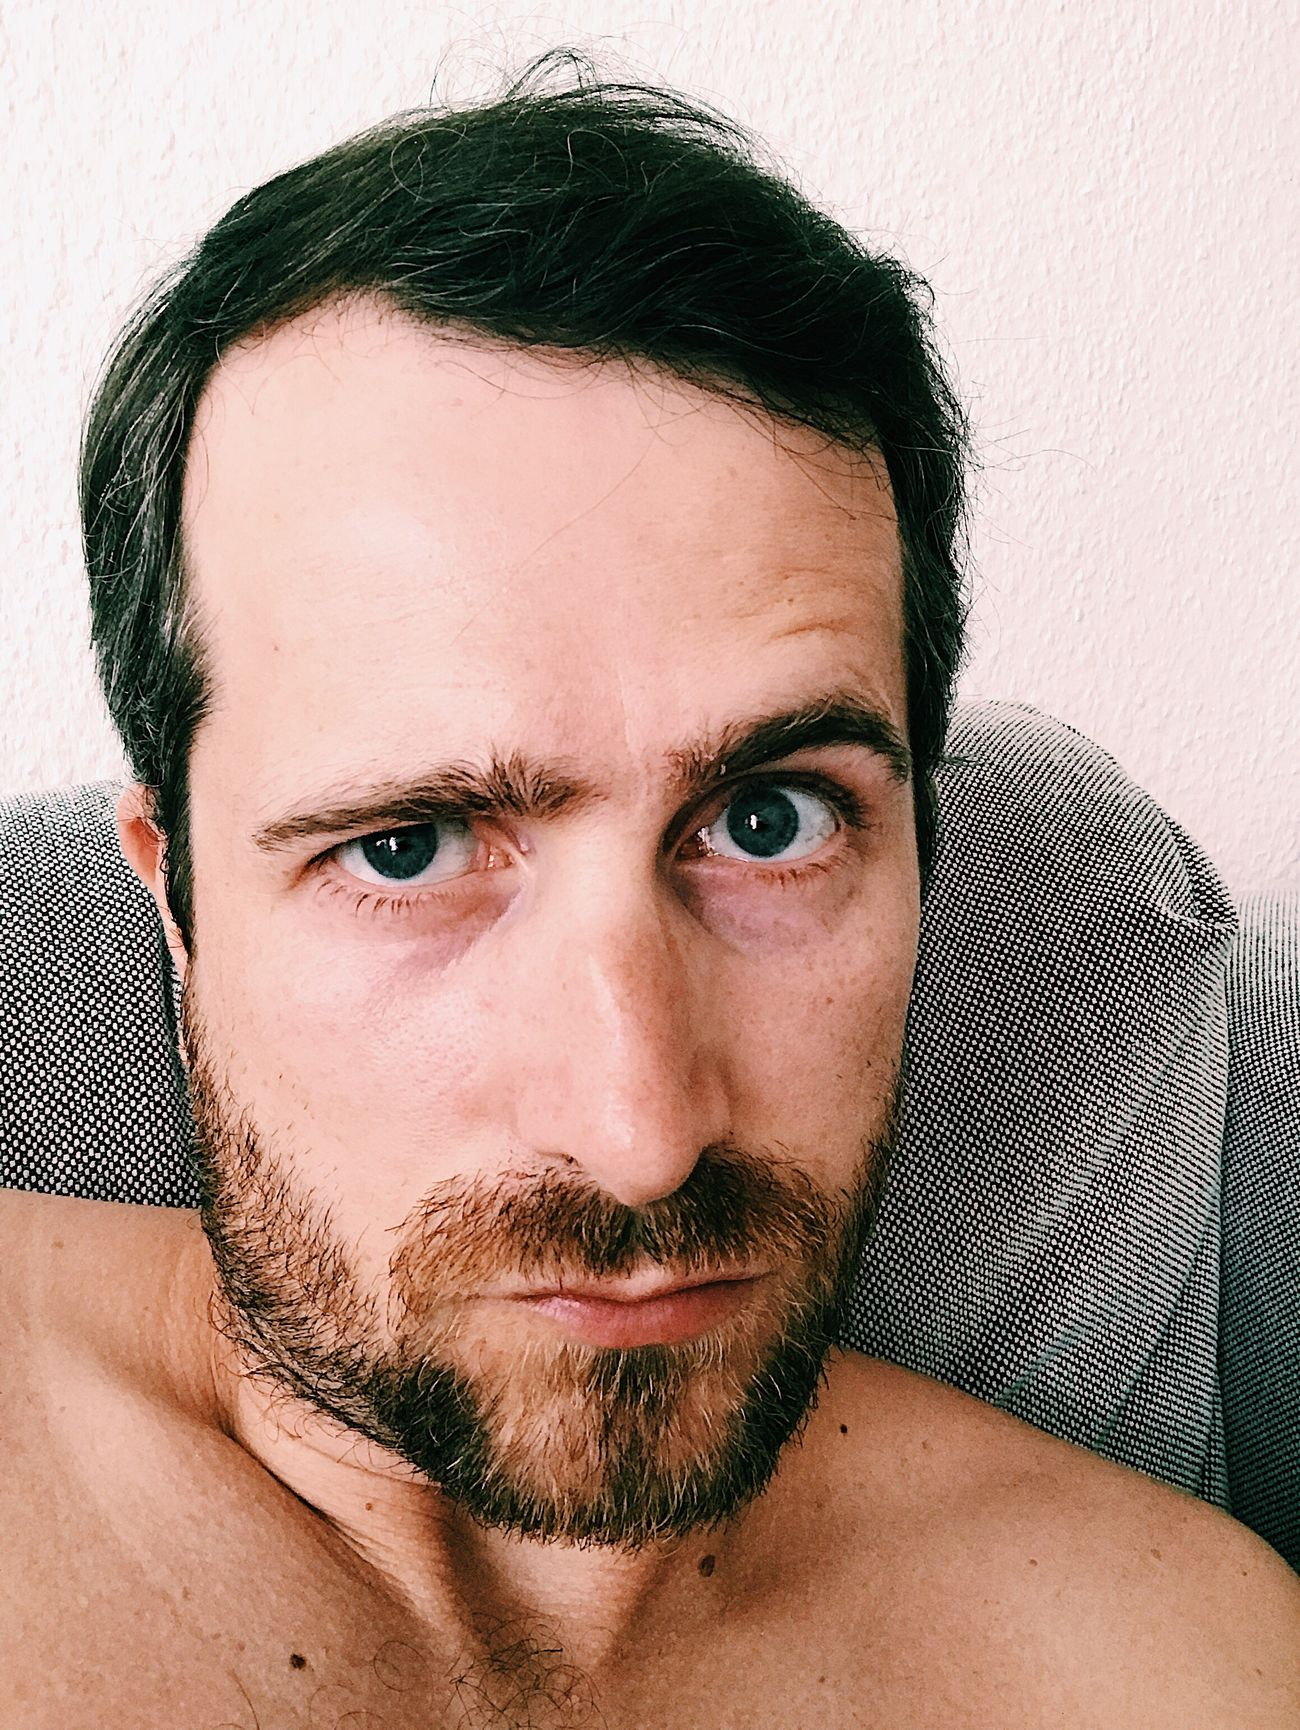 Looking At Camera Portrait Beard One Person Headshot Mid Adult One Man Only Mid Adult Men Only Men Mustache Close-up Shirtless Indoors  Human Face Handsome Adult Real People Men Adults Only Selfie